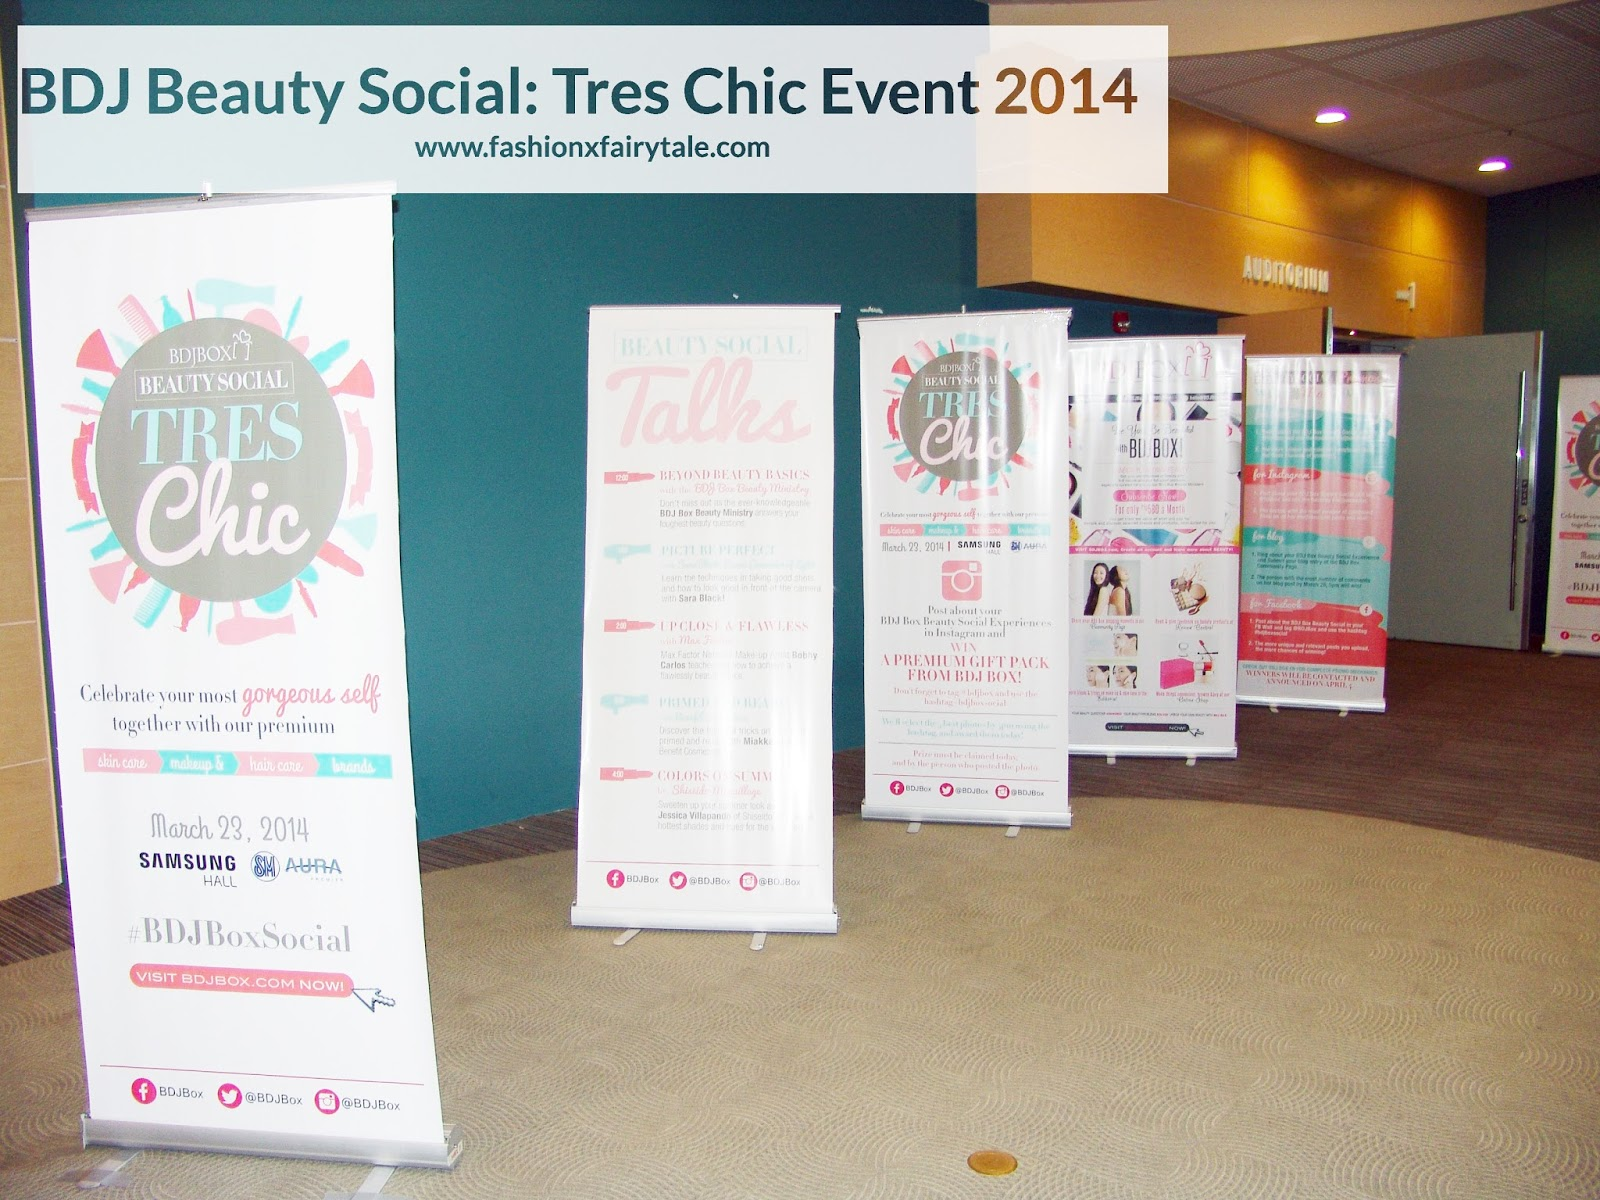 BDJ Beauty Social: Tres Chic Event 2014 Expereince